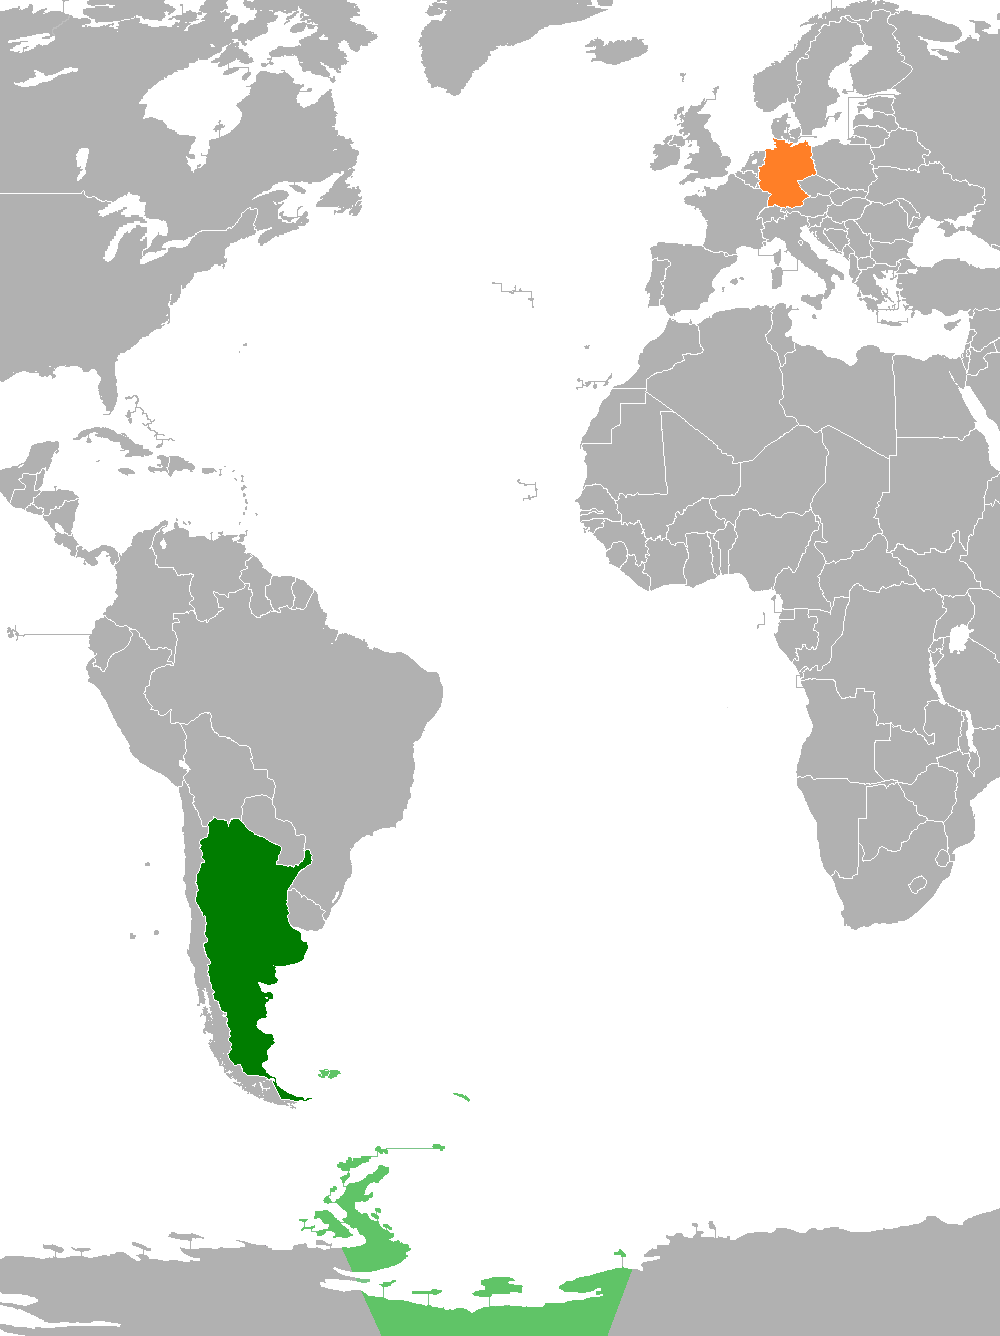 ArgentinaGermany Relations Wikipedia - Argentina global map